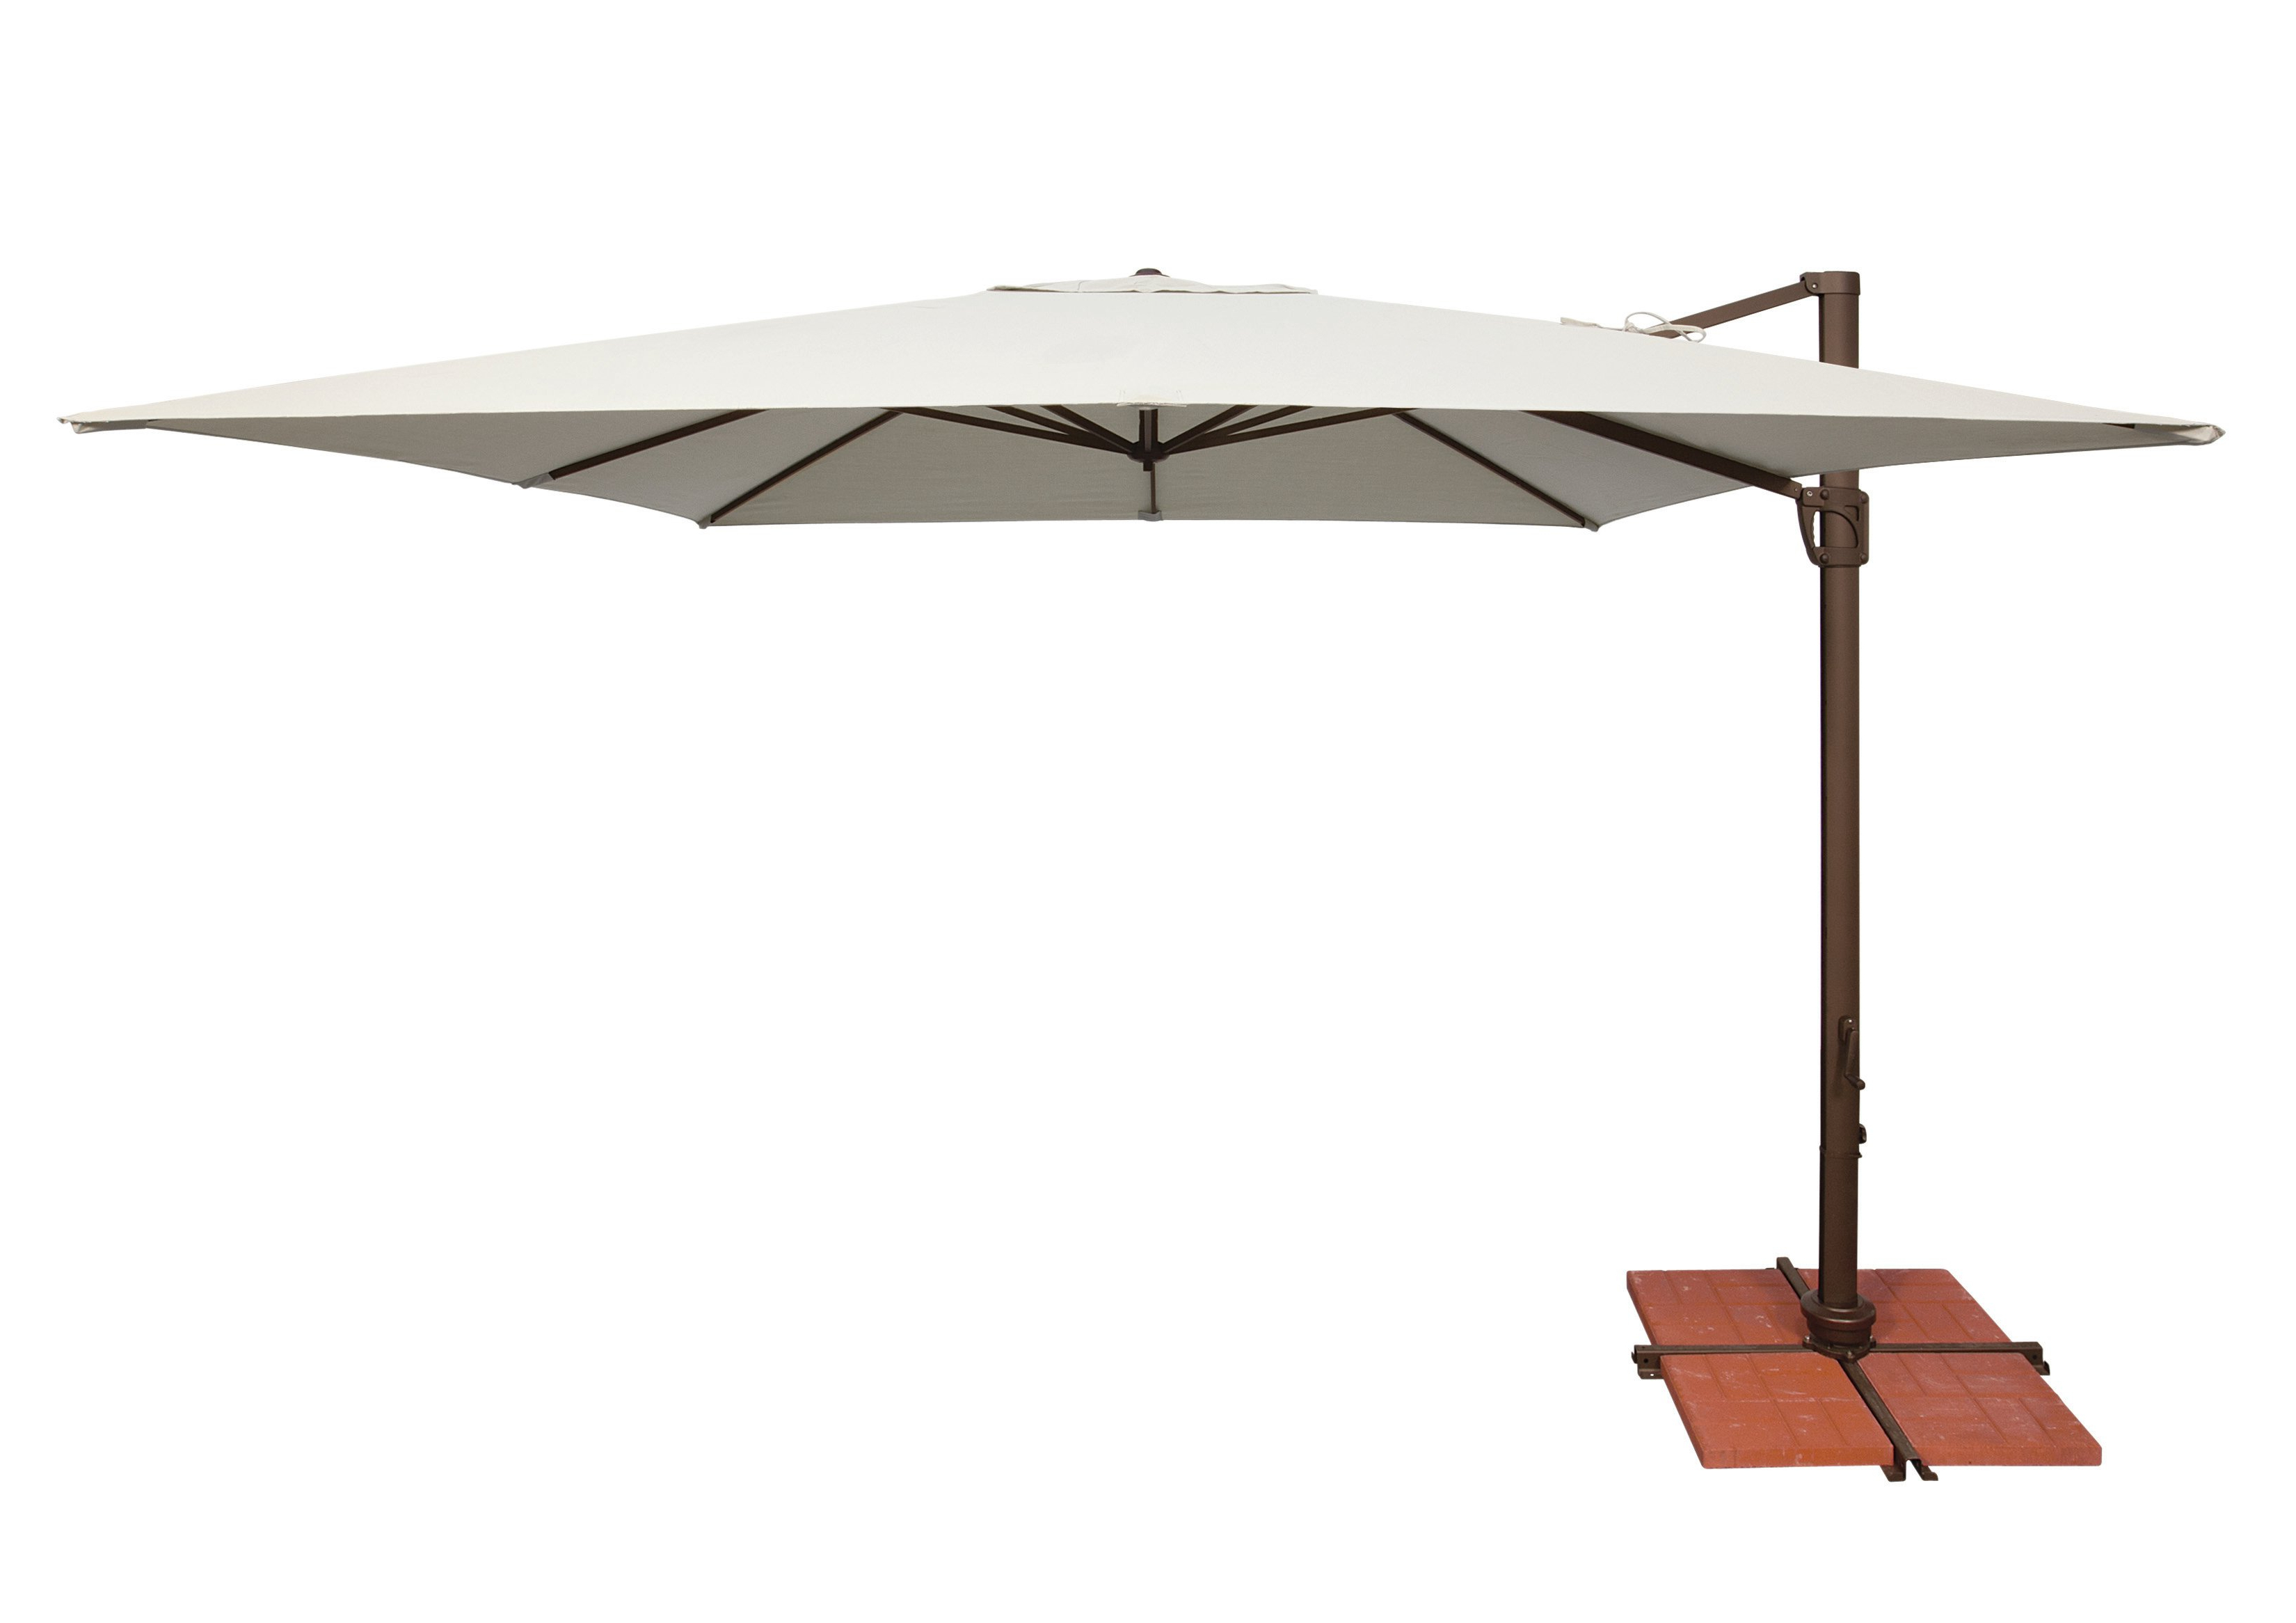 Newest Emely Cantilever Sunbrella Umbrellas With Windell 10' Square Cantilever Umbrella (View 16 of 20)